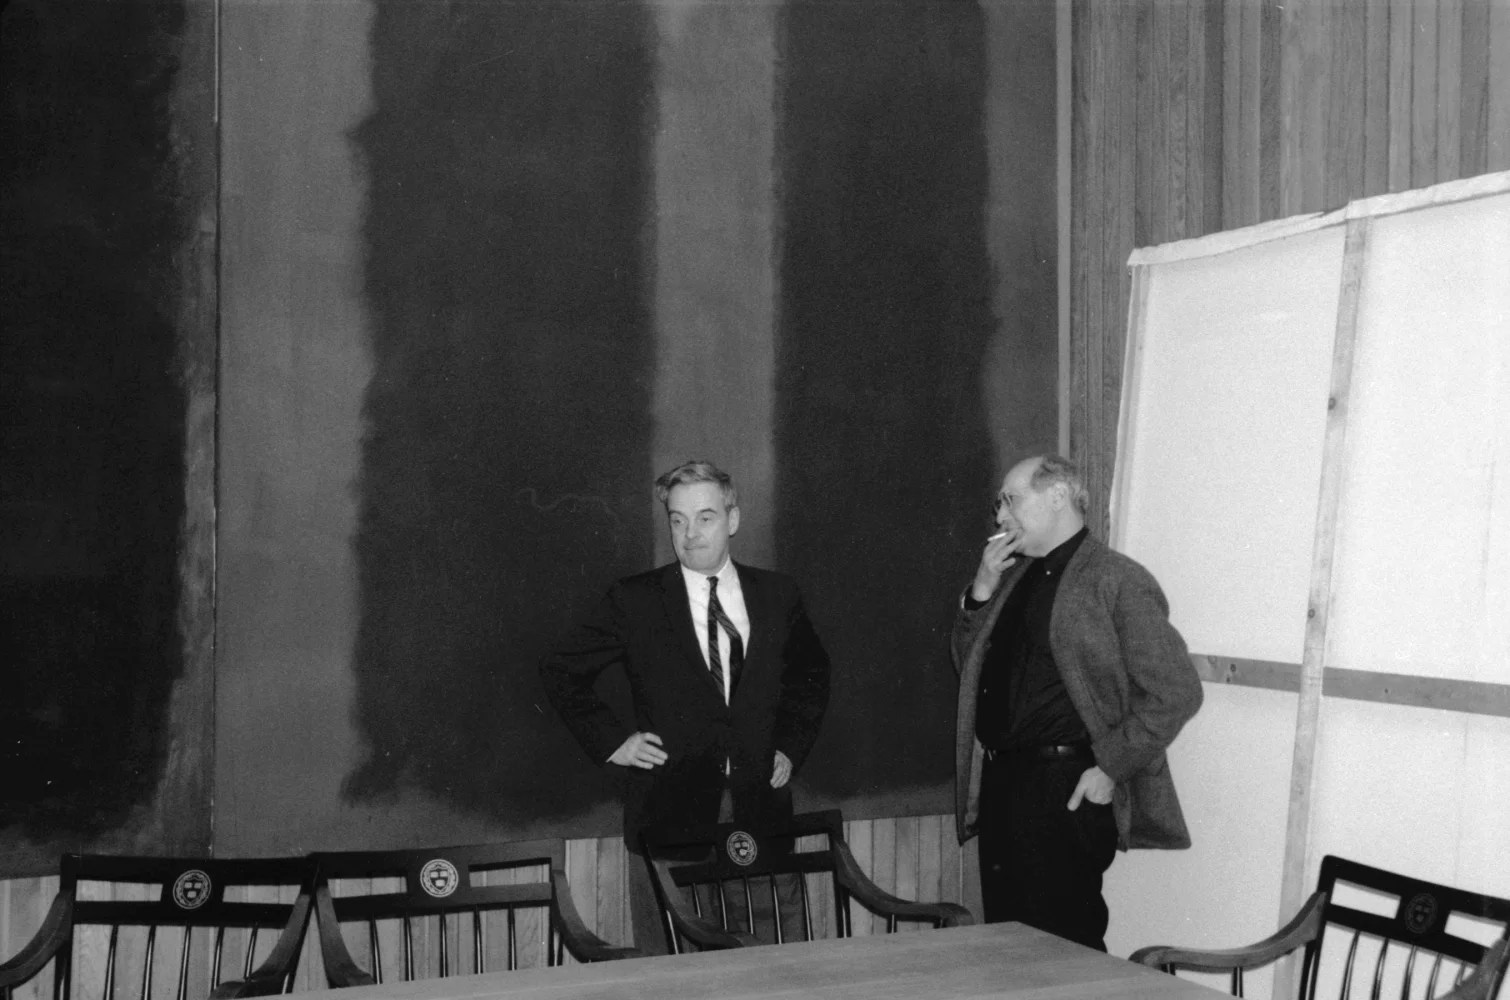 """John Coolidge, former director of the Fogg Museum, and Mark Rothko (right) in front of """"Panel Two"""" and """"Panel Three"""" of the Harvard murals on the tenth floor of Harvard's Holyoke Center, 1963. © 2009 Kate Rothko Prizel and Christopher Rothko / Artists Rights Society (ARS), New York. Elizabeth H. Jones, ©President and Fellows of Harvard College"""